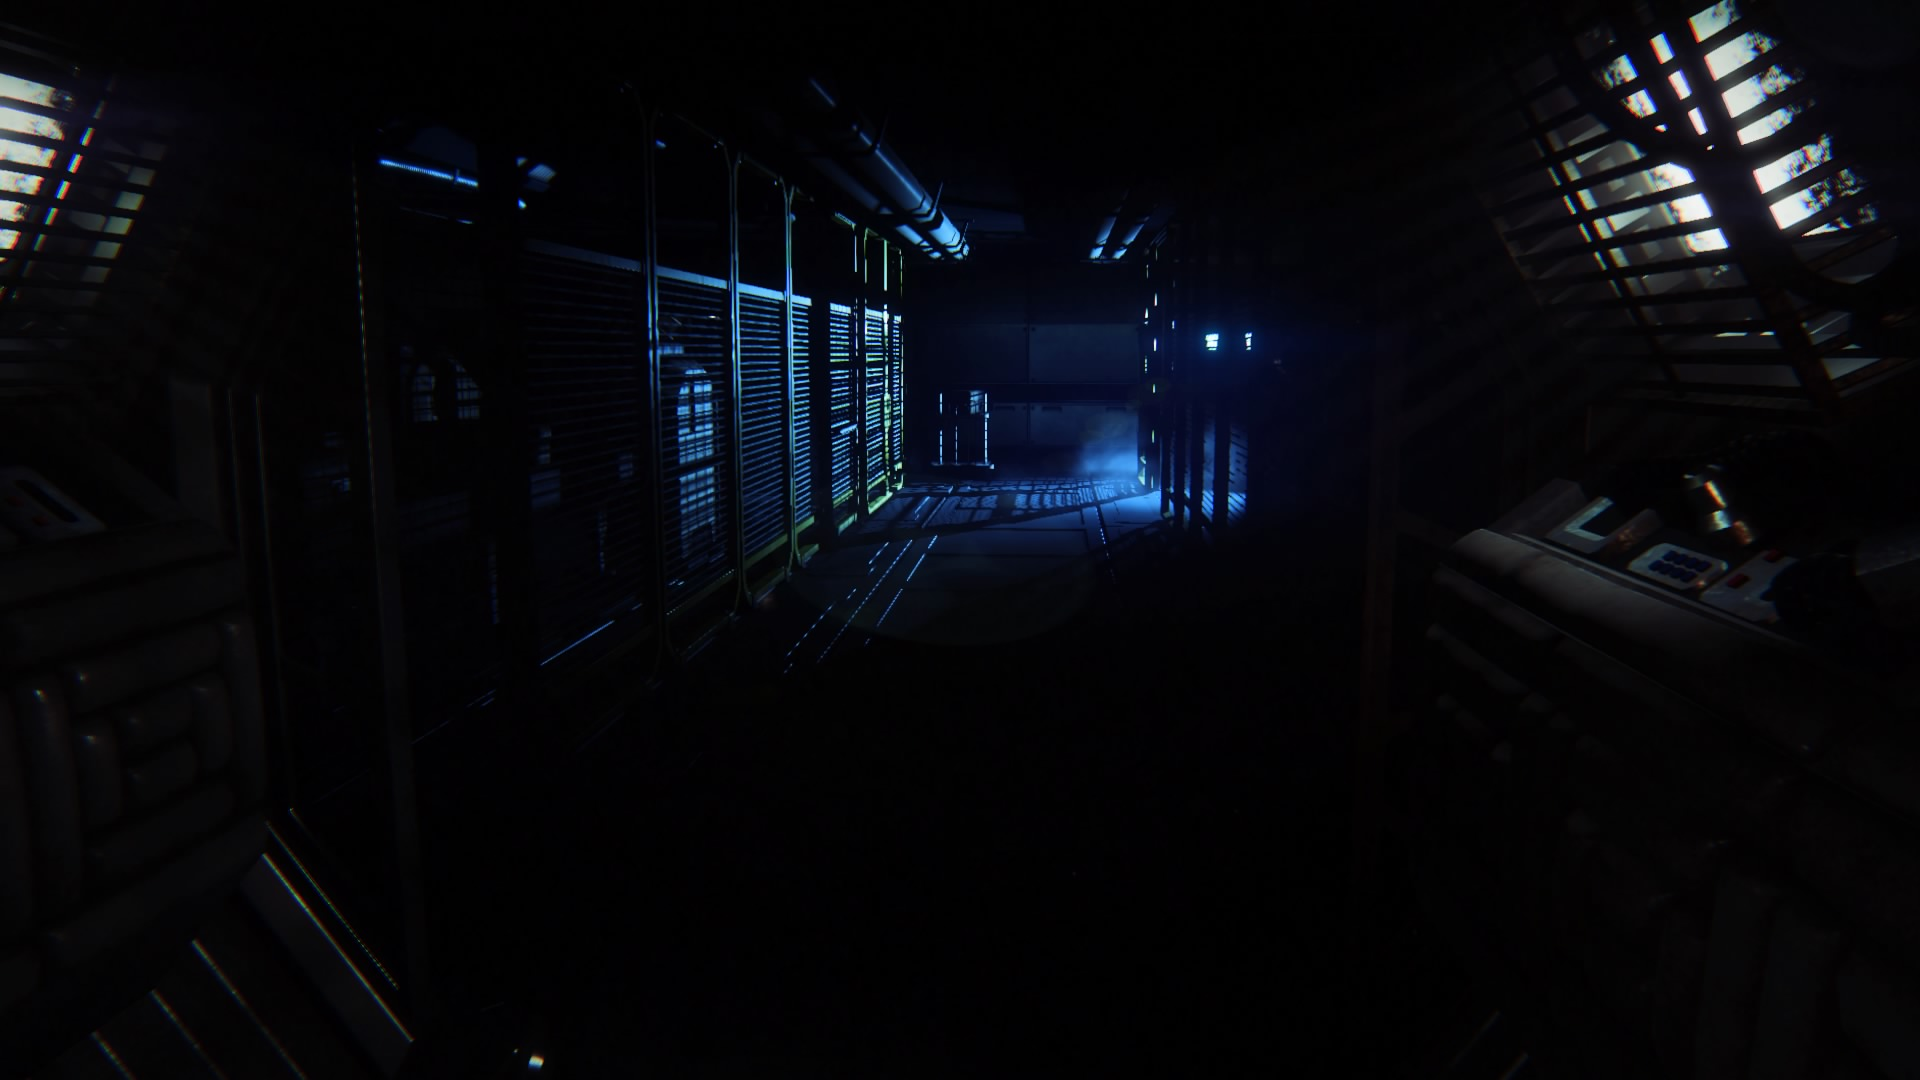 Lowering the brightness makes the station feel smaller and it makes you question every shadow and sound in crippling paranoia. More fear.